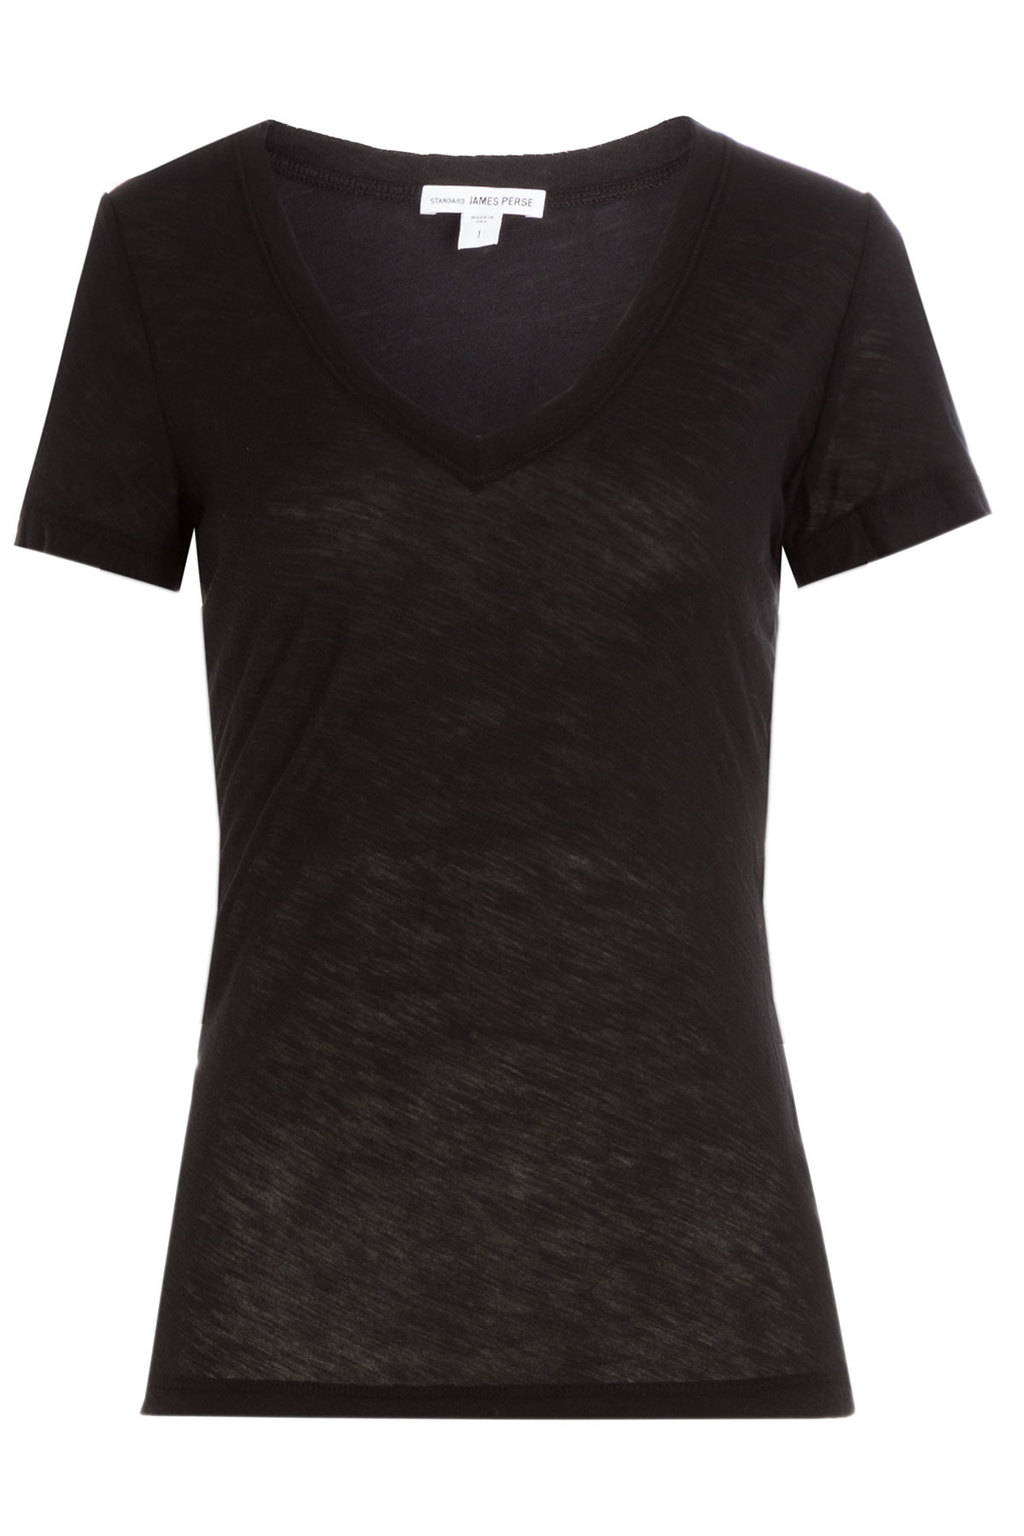 Cotton T Shirt Black - neckline: v-neck; pattern: plain; style: t-shirt; predominant colour: black; occasions: casual; length: standard; fibres: cotton - 100%; fit: body skimming; sleeve length: short sleeve; sleeve style: standard; pattern type: fabric; texture group: jersey - stretchy/drapey; wardrobe: basic; season: a/w 2016